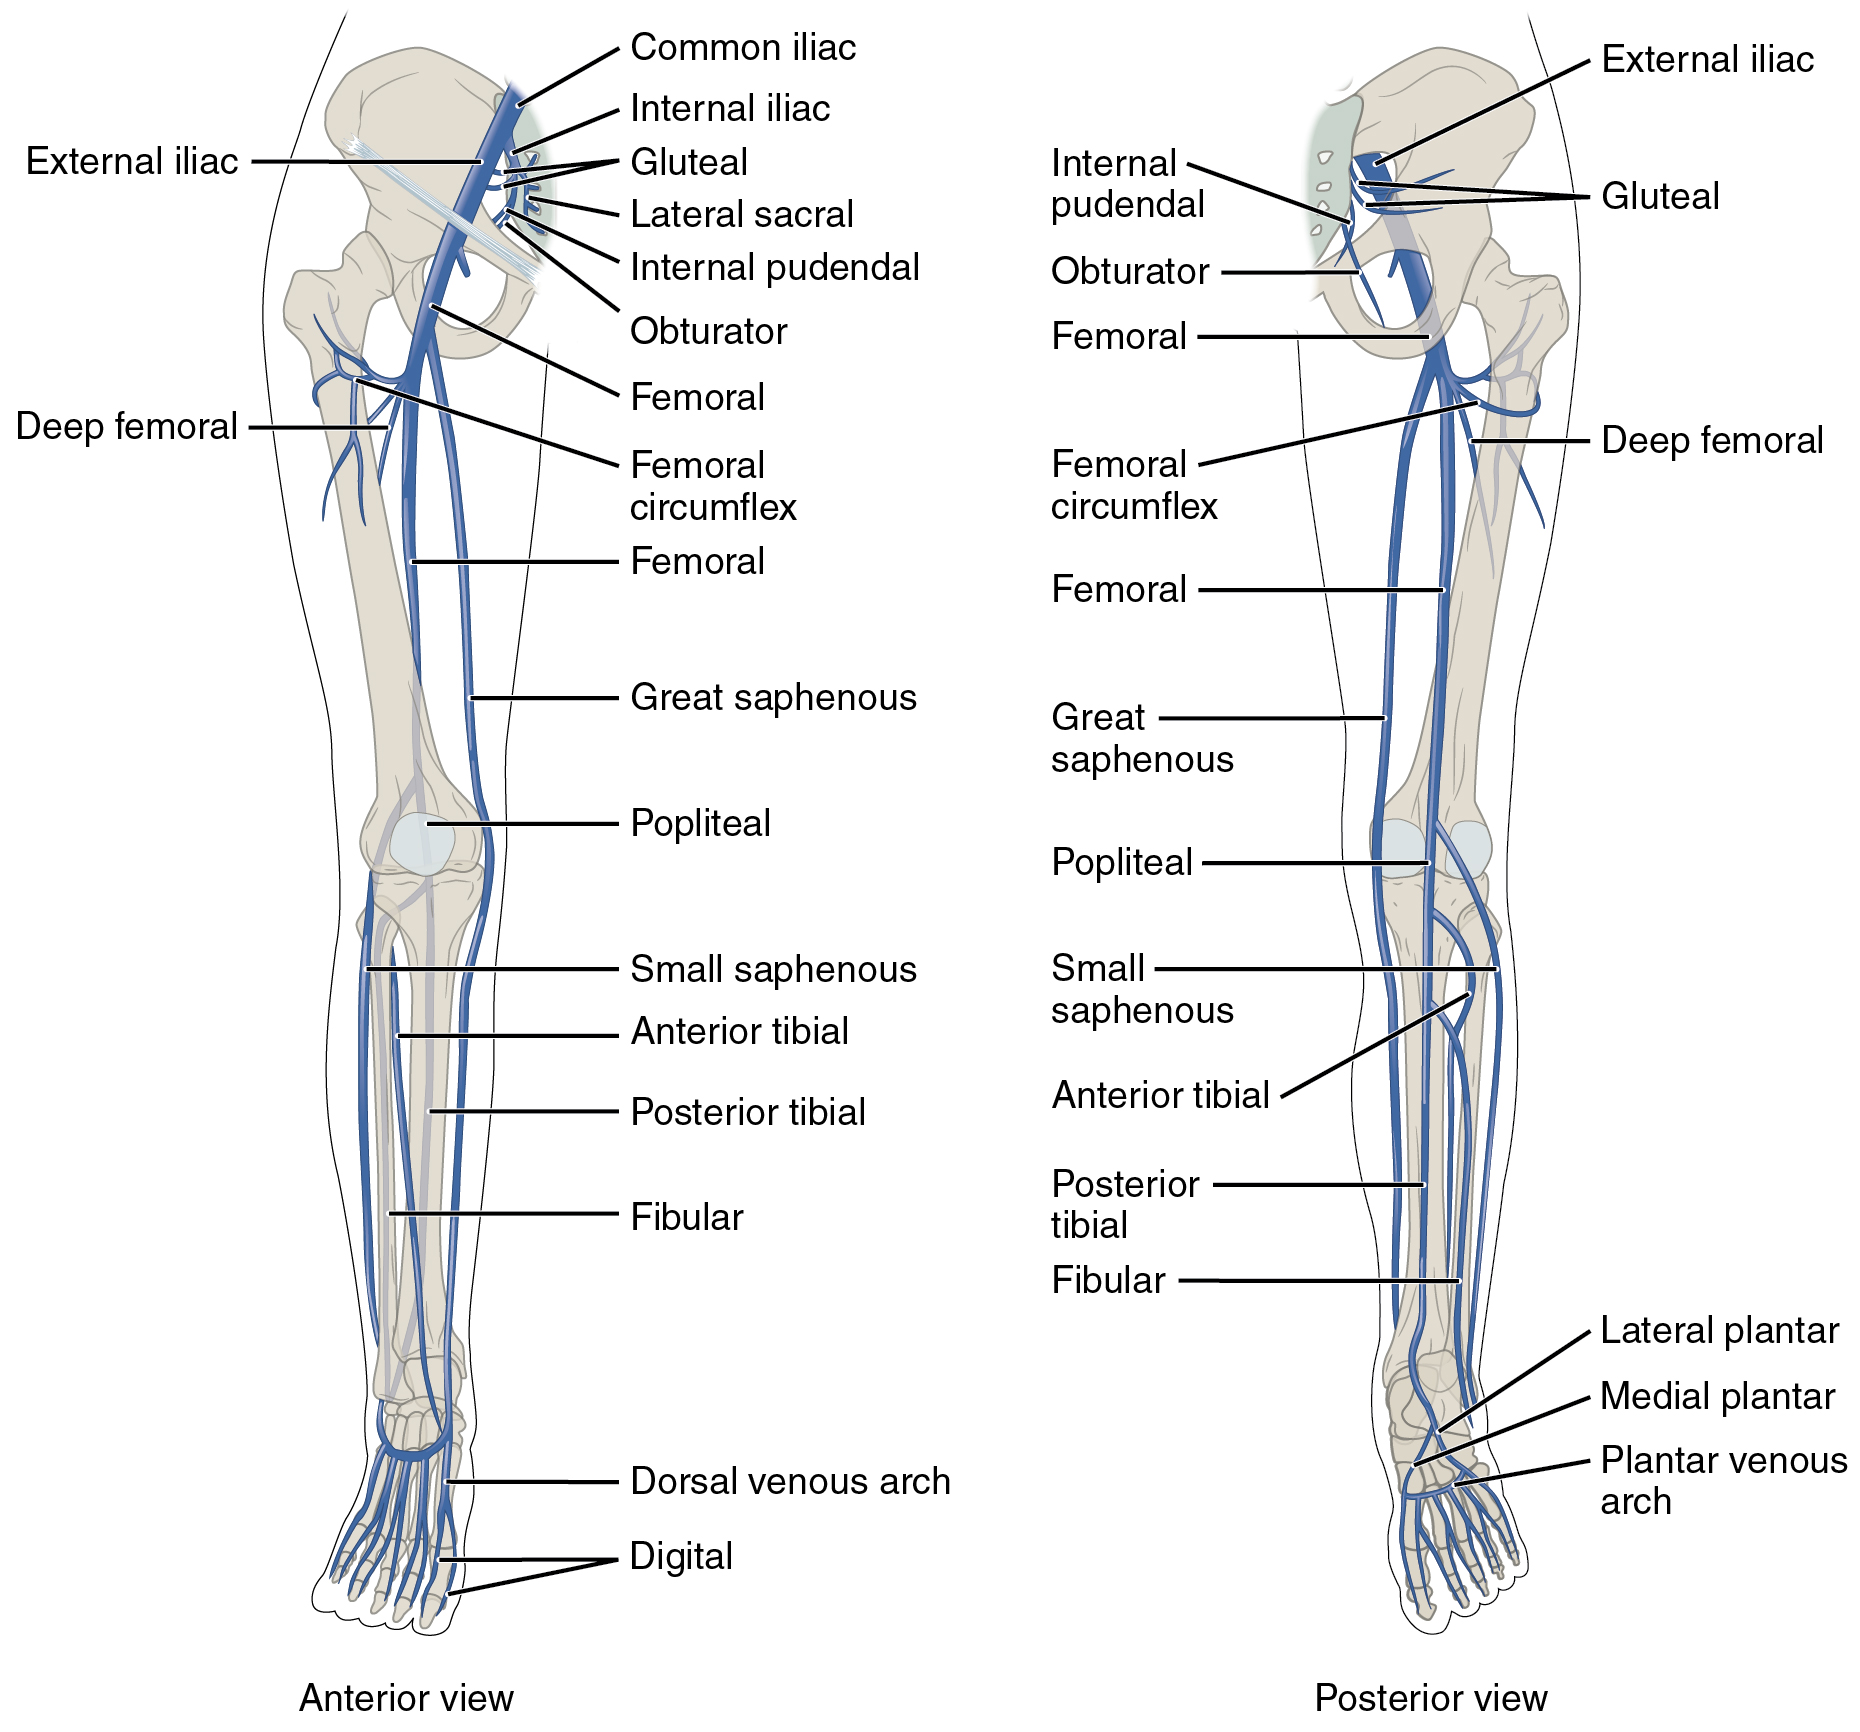 The left panel shows the anterior view of veins in the legs, and the right panel shows the posterior view.